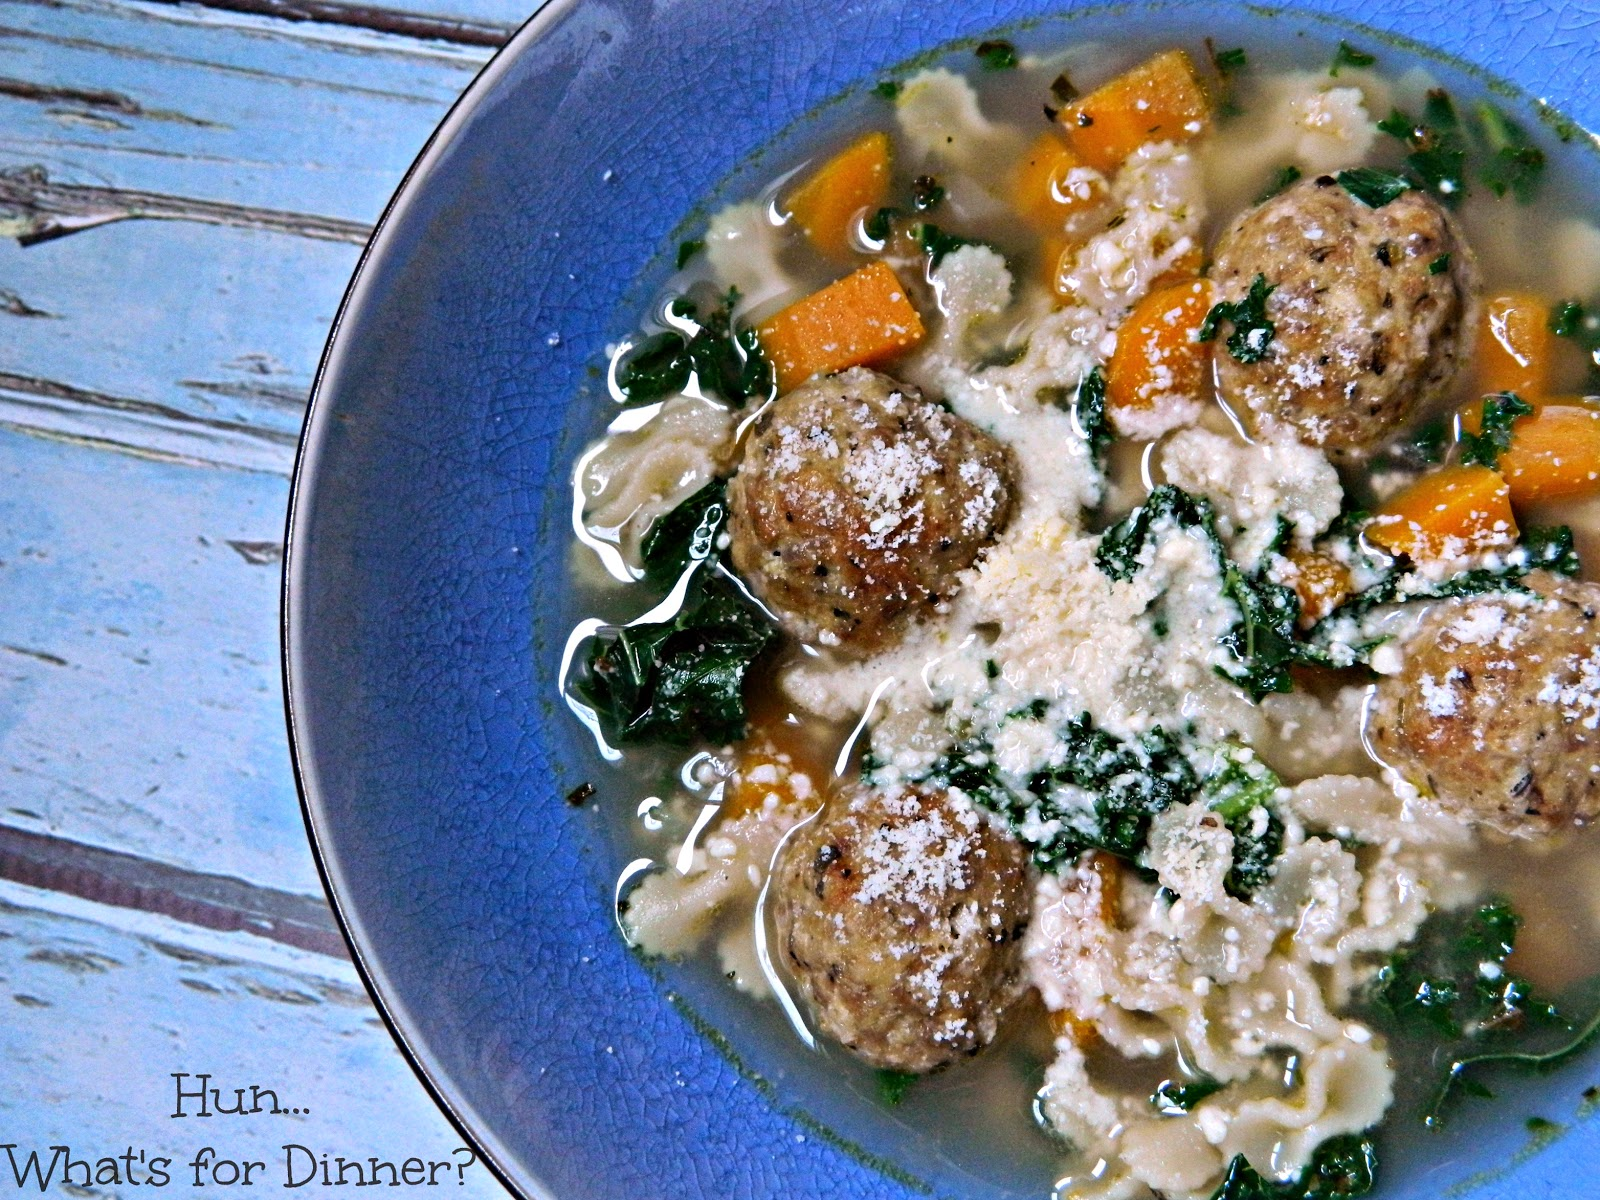 Tender chicken meatballs are the star in this traditional Italian soup by Hun... What's for Dinner?